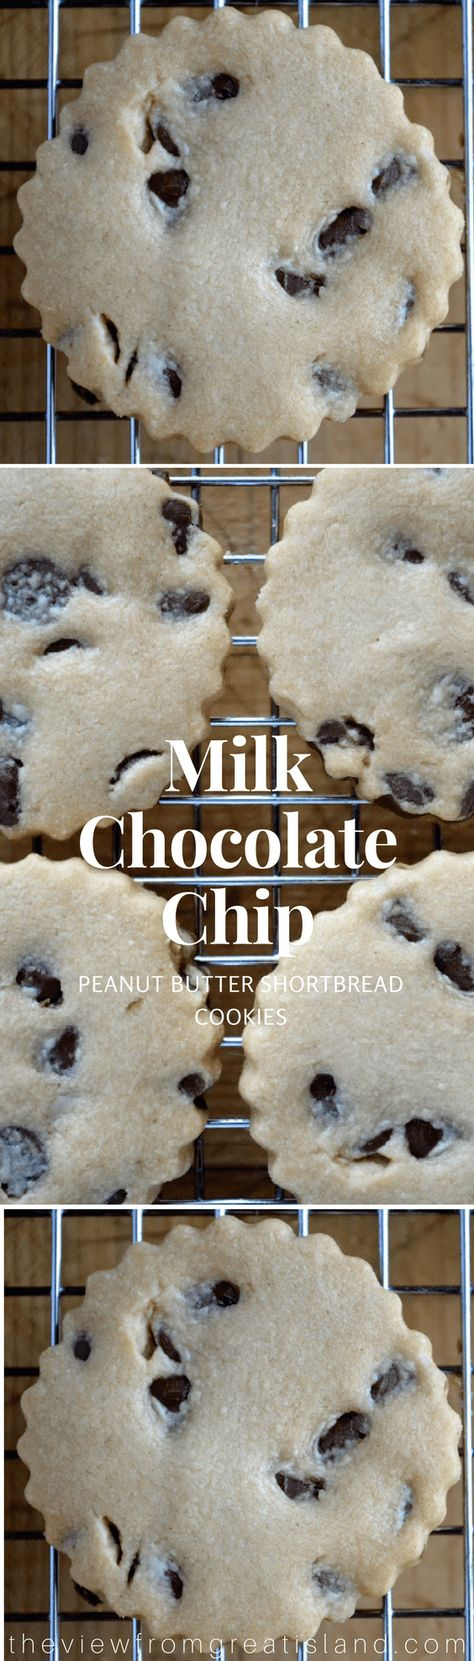 These Milk Chocolate Chip Peanut Butter Shortbread Cookies are an easy slice and bake cookie and a to-die-for combination of peanut butter, chocolate chips, and shortbread! #cookies #shortbreadcookies #chocolatechipcookies #peanutbutter cookies #holidaycookies #Christmascookies #sliceandbake #easycookies #bestchocolatechipcookies